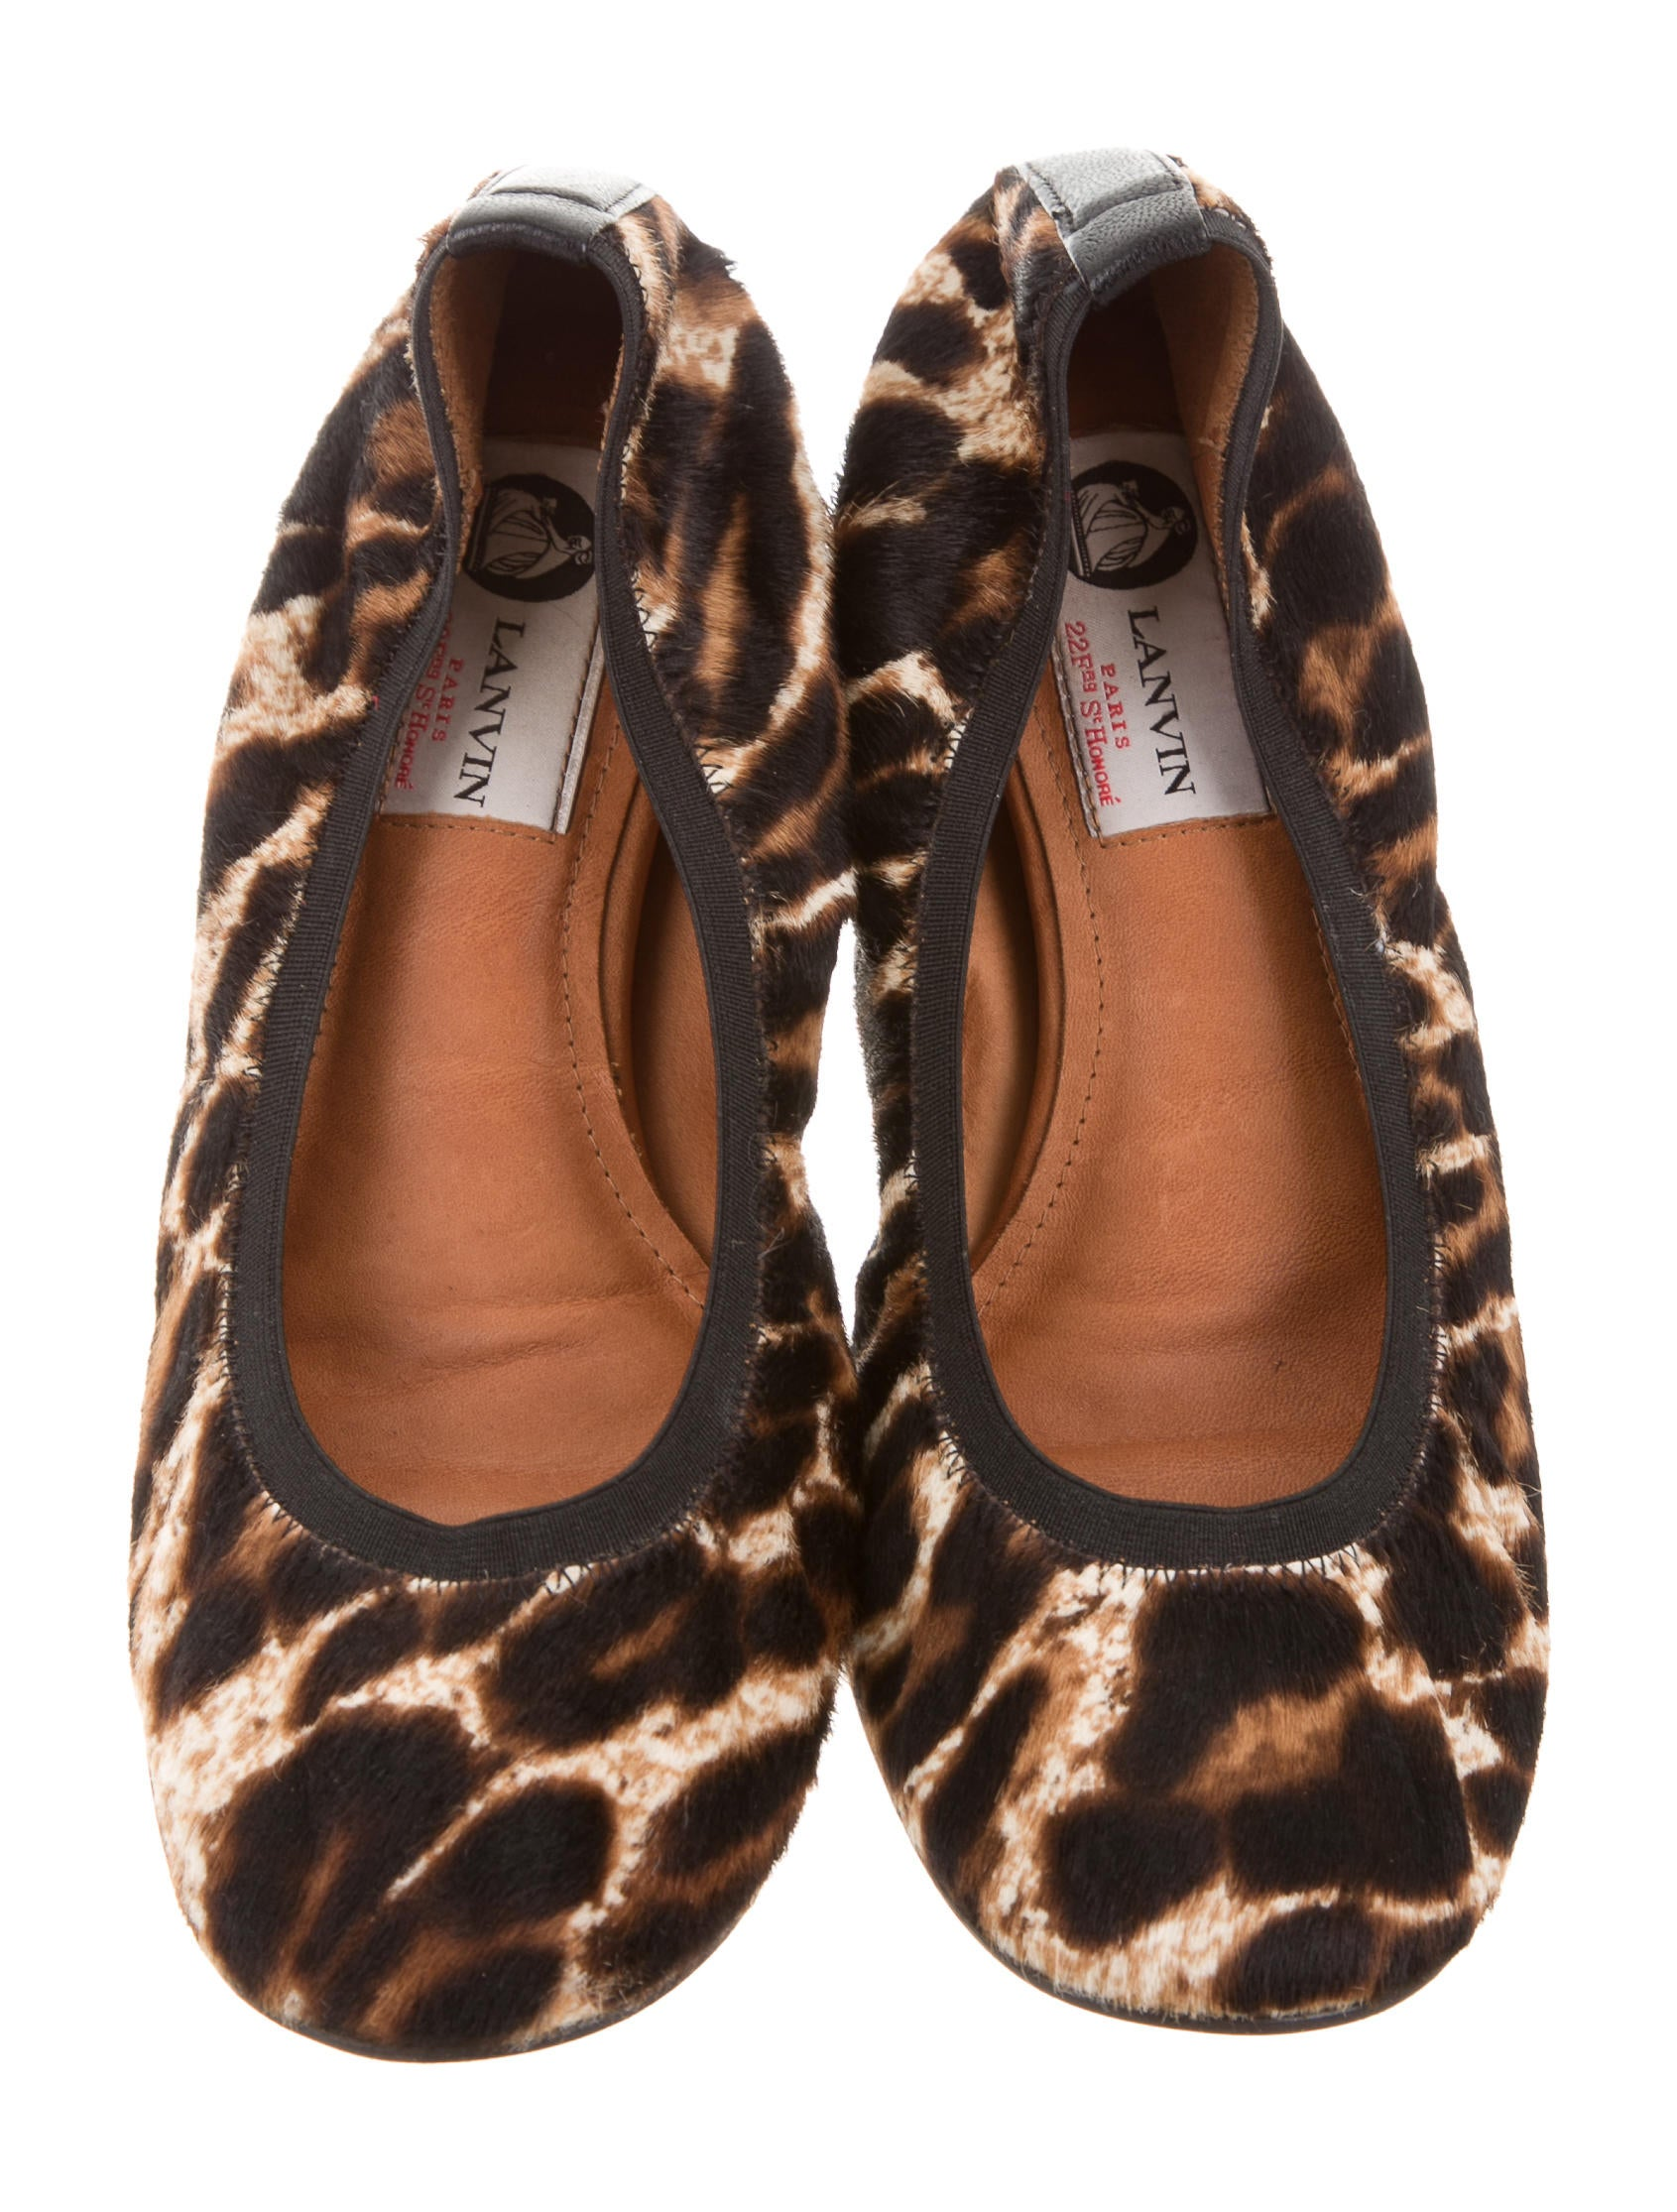 Shop Women's Flats & Loafers At getson.ga Enjoy Free Shipping & Returns On All Orders. Skip to main content. stanton ballet. $ + stanton ballet. $ + stanton ballet in signature canvas. $ + grand loafer with leopard print. $ $ + grand loafer. $ .